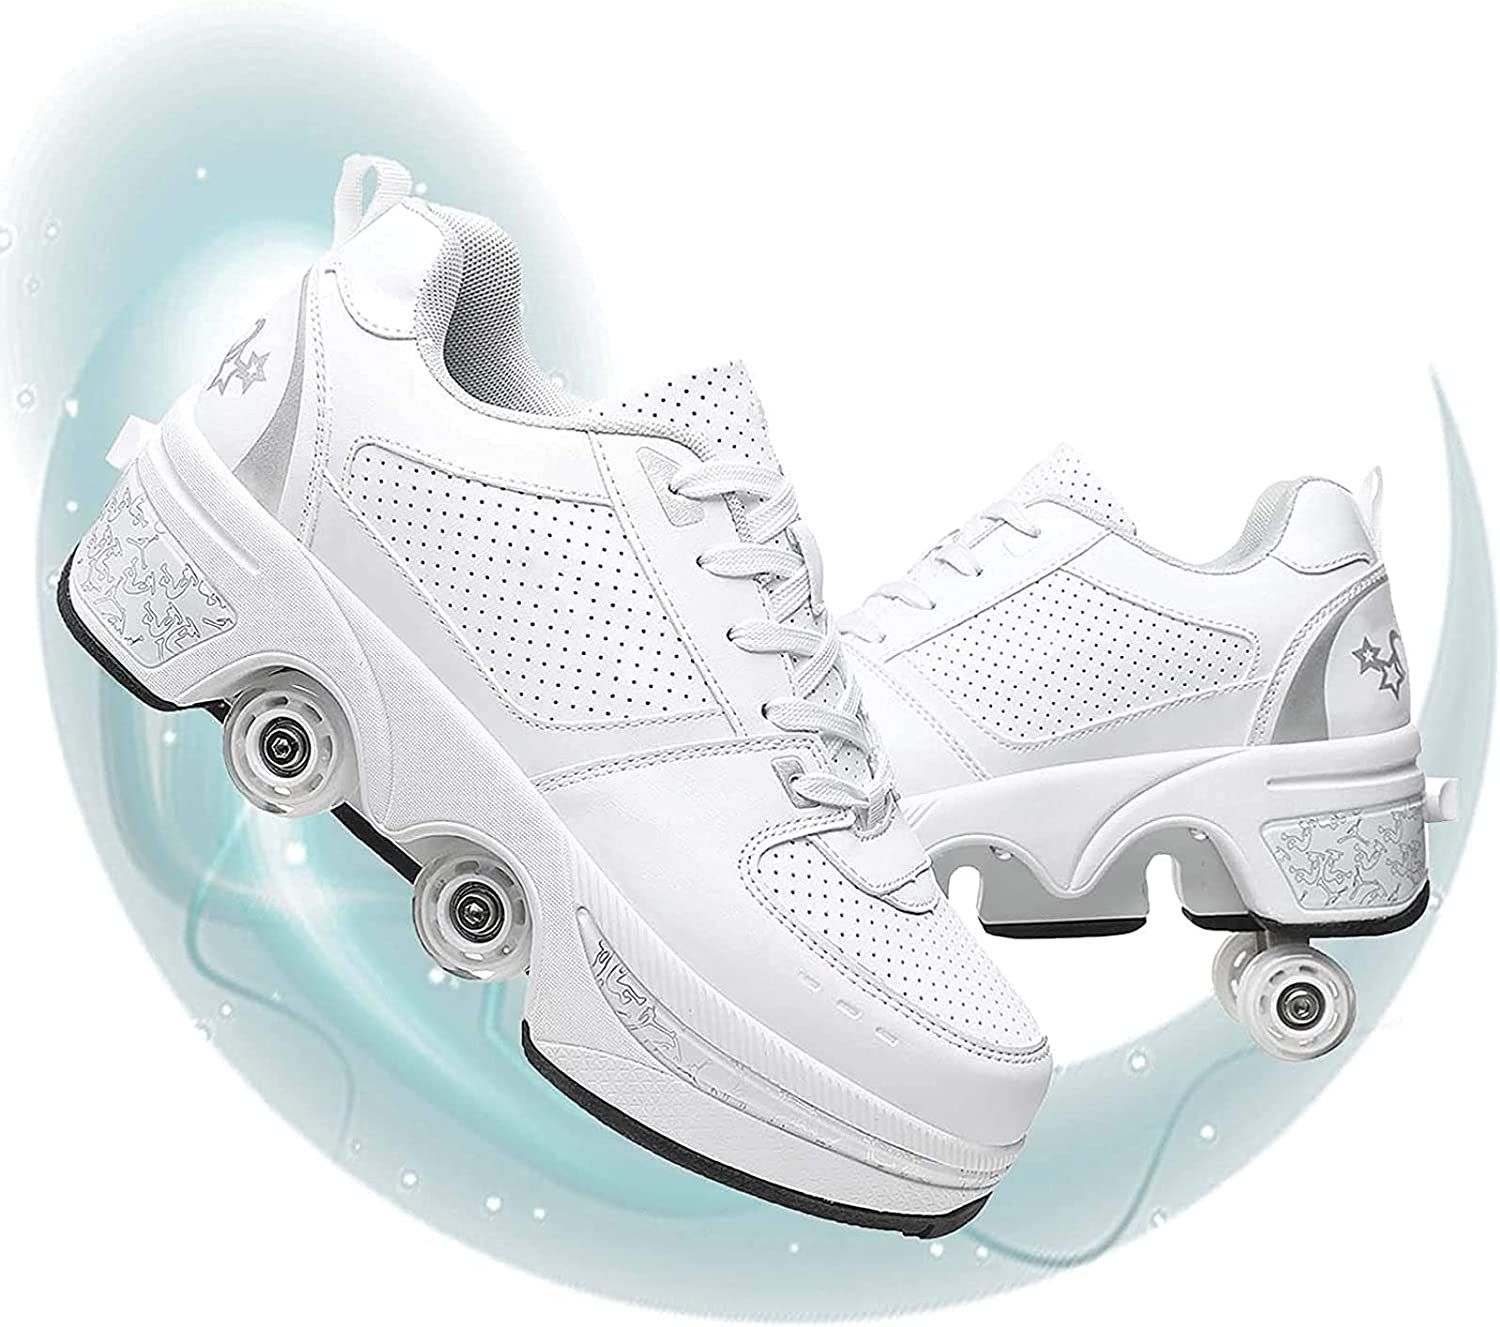 ZHYX Roller Skate Ranking TOP8 Shoes Challenge the lowest price of Japan ☆ Deformation Invisible Fou Parkour